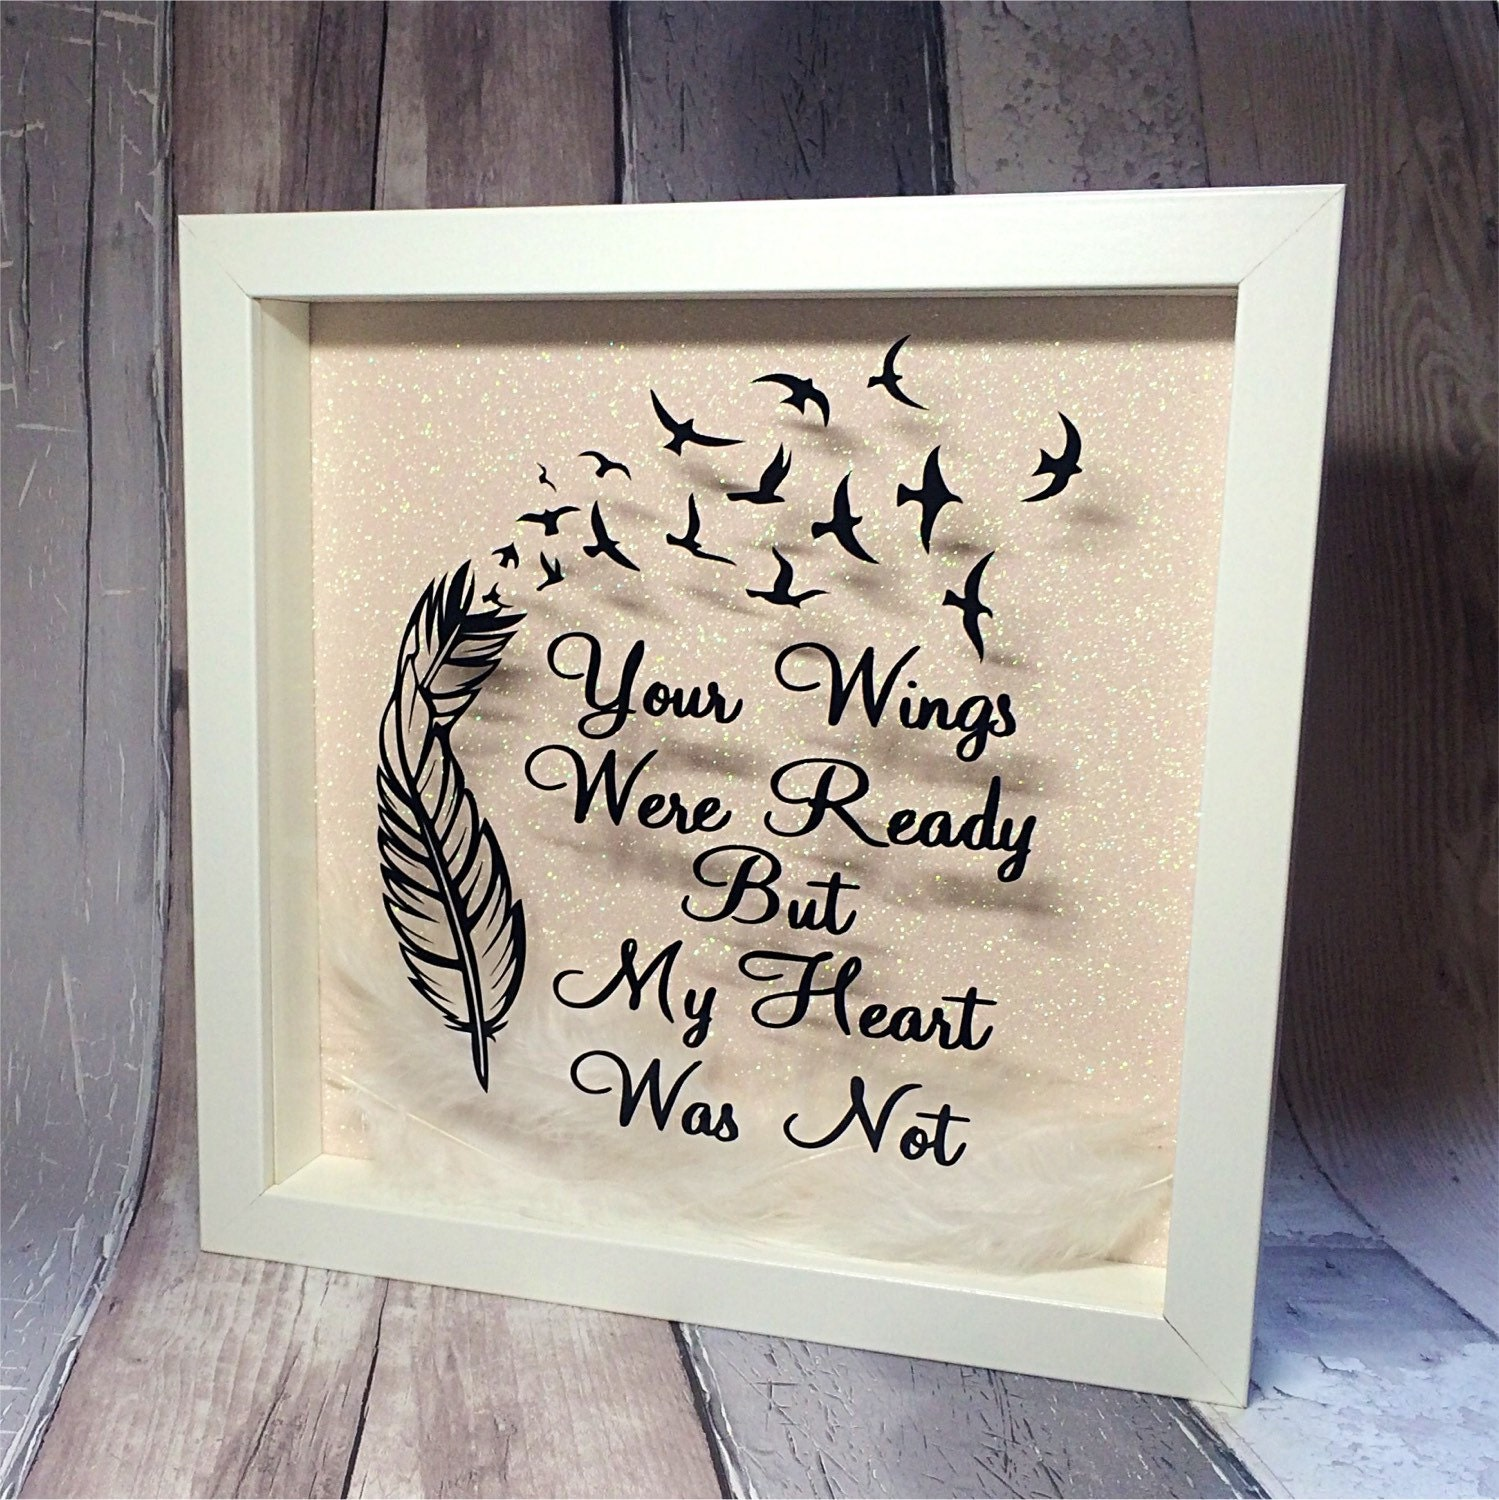 Picture And Memory Quotes: Inspirational Quote In Memory Of Memorial Box Picture Box